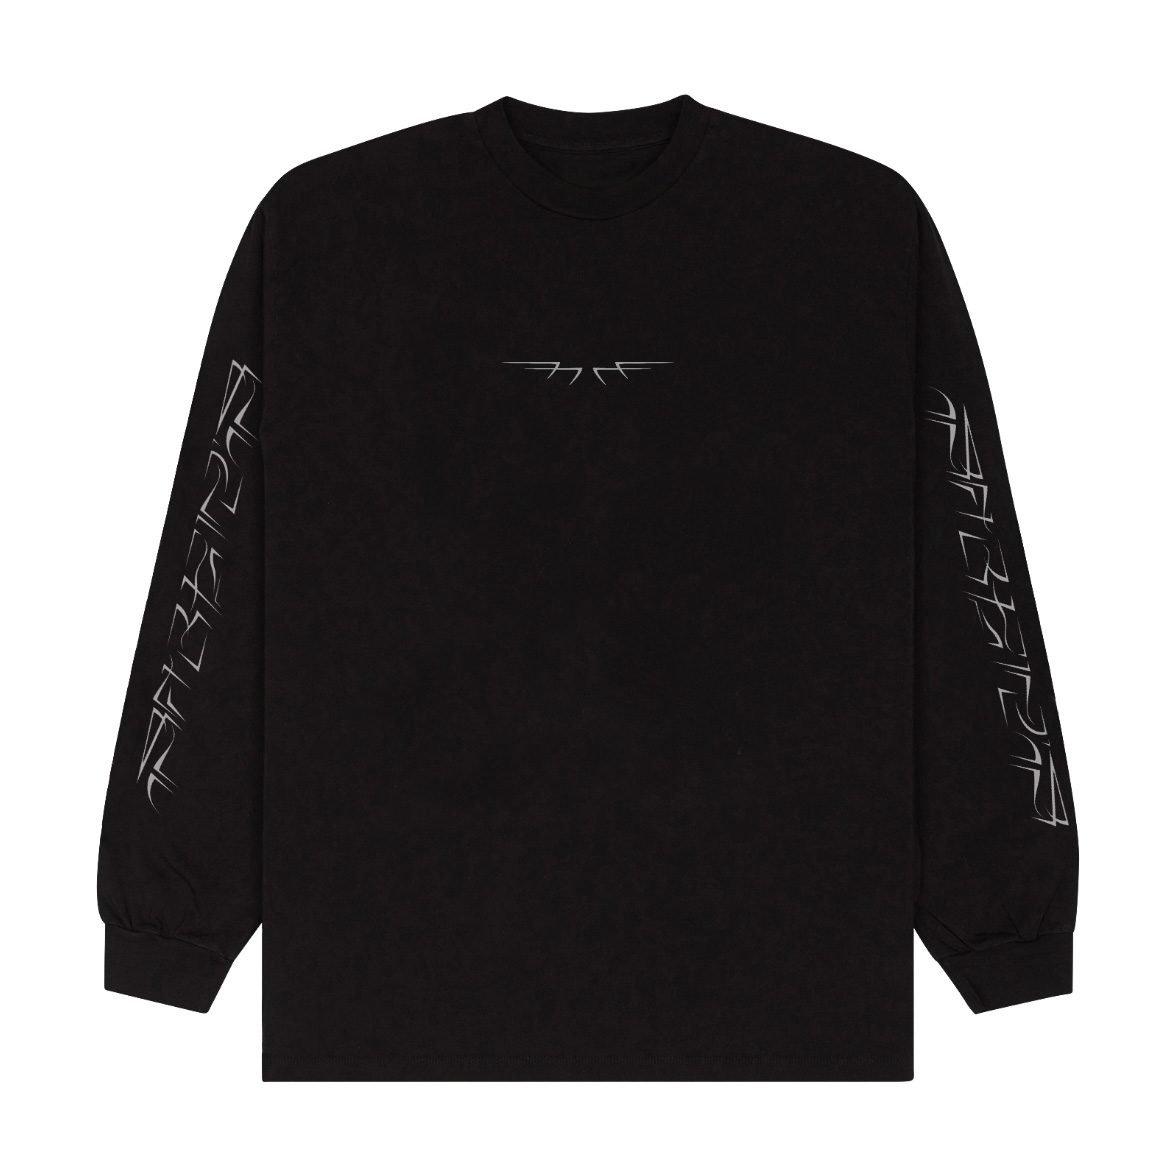 Limited Edition SIRENS Longsleeve - FRONT